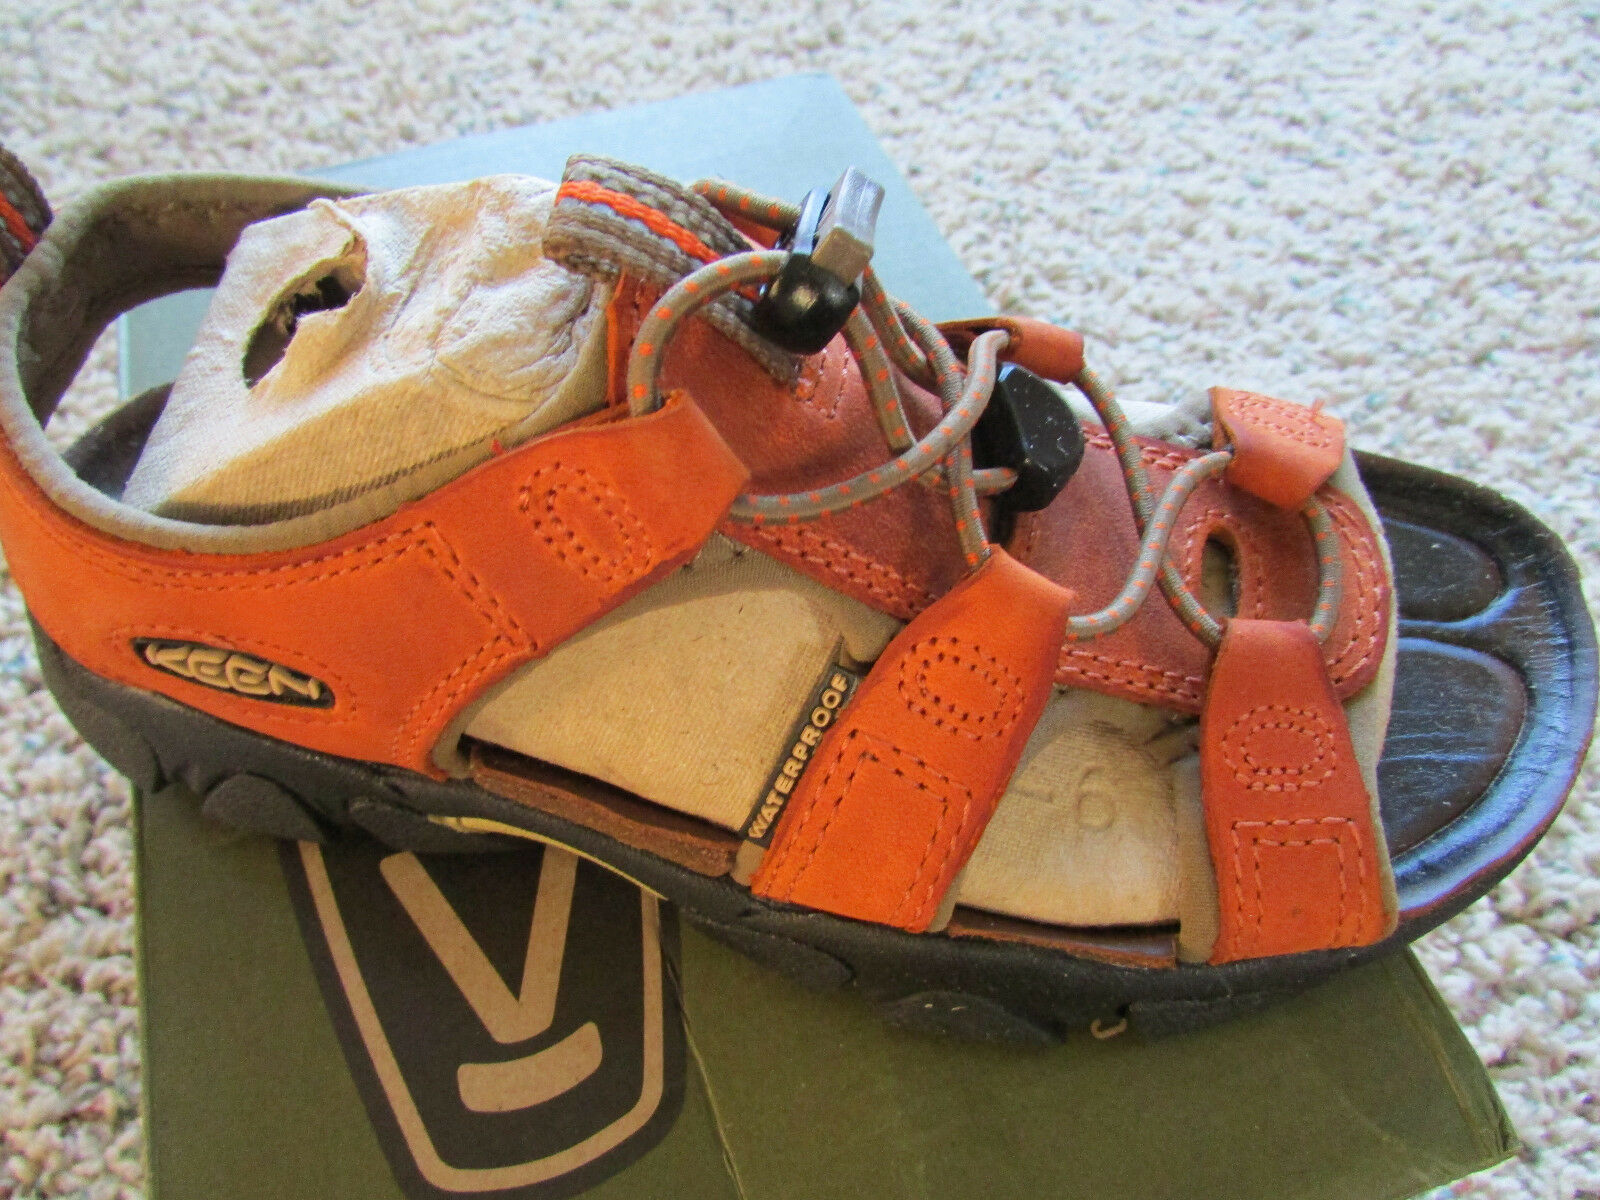 NEW KEEN SARASOTA SANDALS WOMENS 5 RUST SPORT SANDALS WATERPROOF